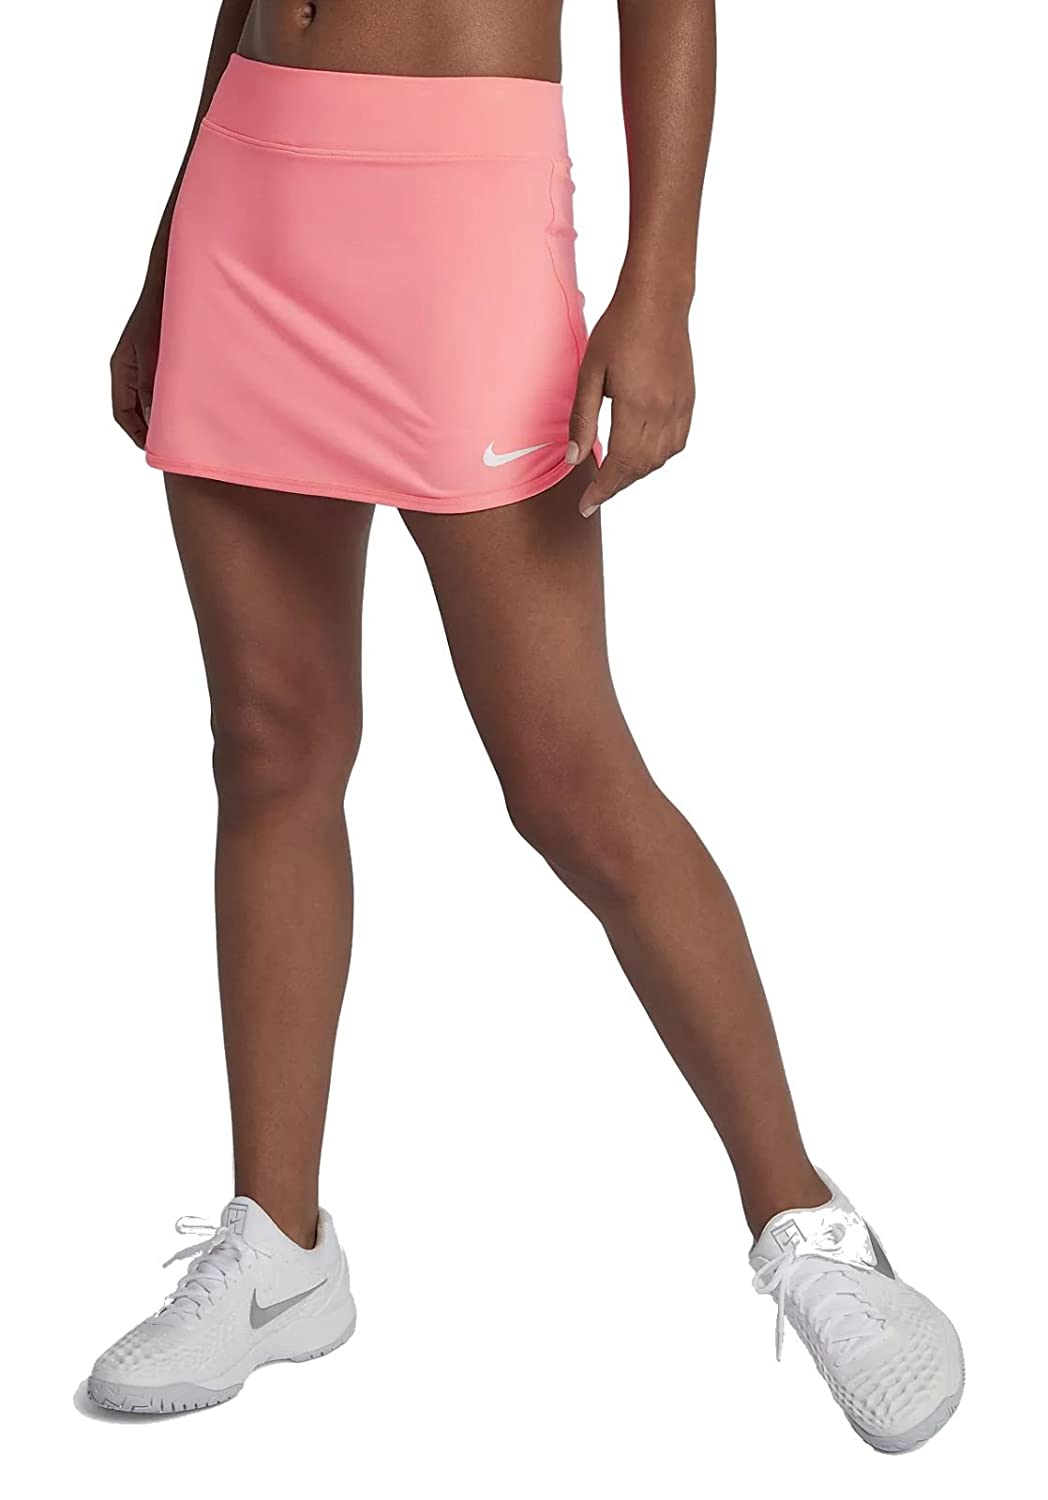 NIKE Court Pure Women's Tennis Skirt (Small, Lava Glow/White) 728777-676